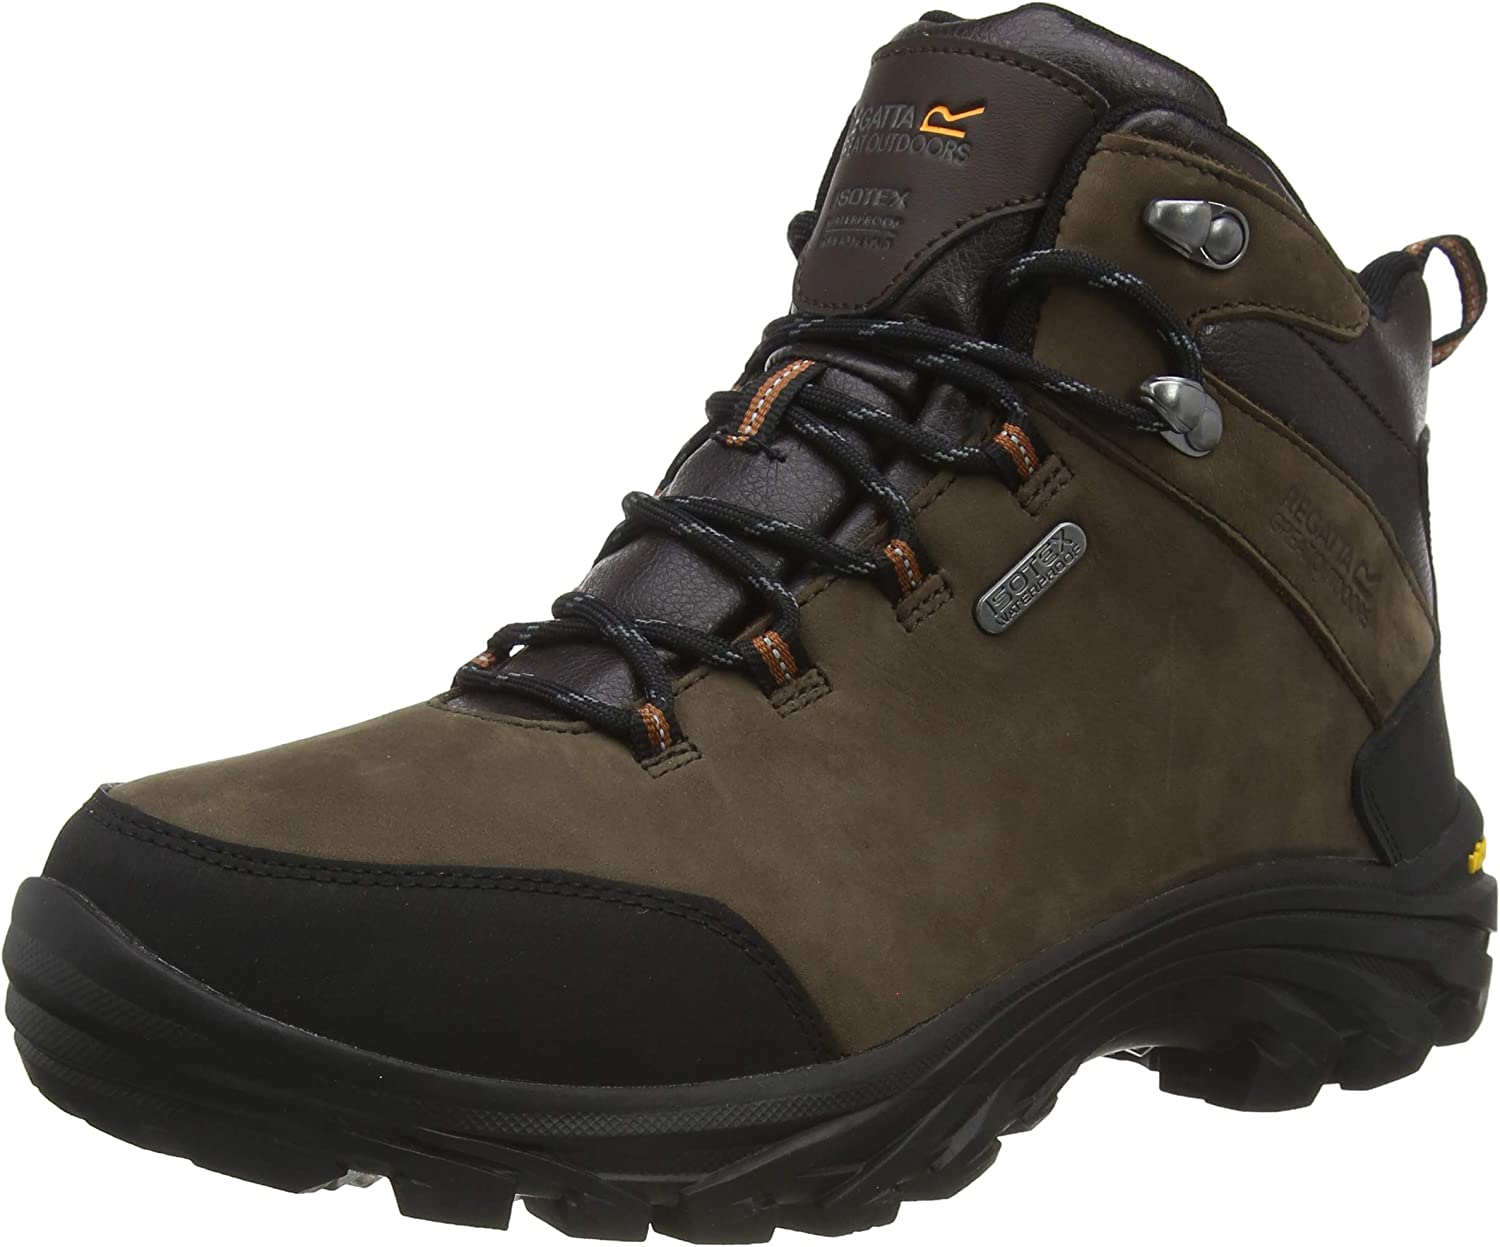 Rapid price rise Regatta Great Outdoors Mens Hiking Leather Boots Burrell